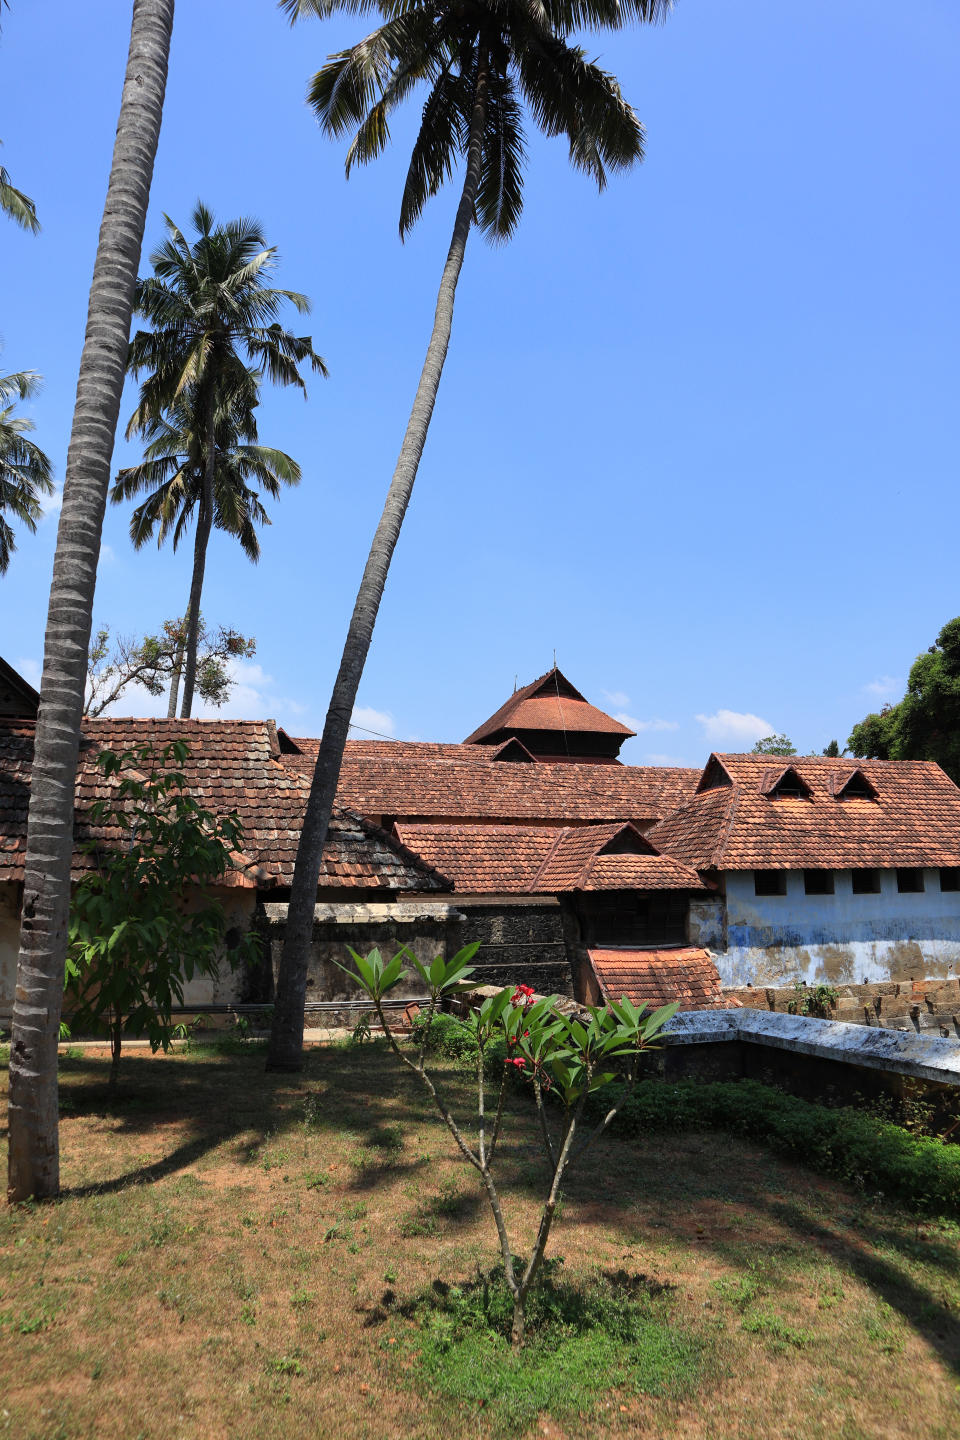 The palace is located at the foot of the Veli Hills, which forms a part of the Western Ghats.